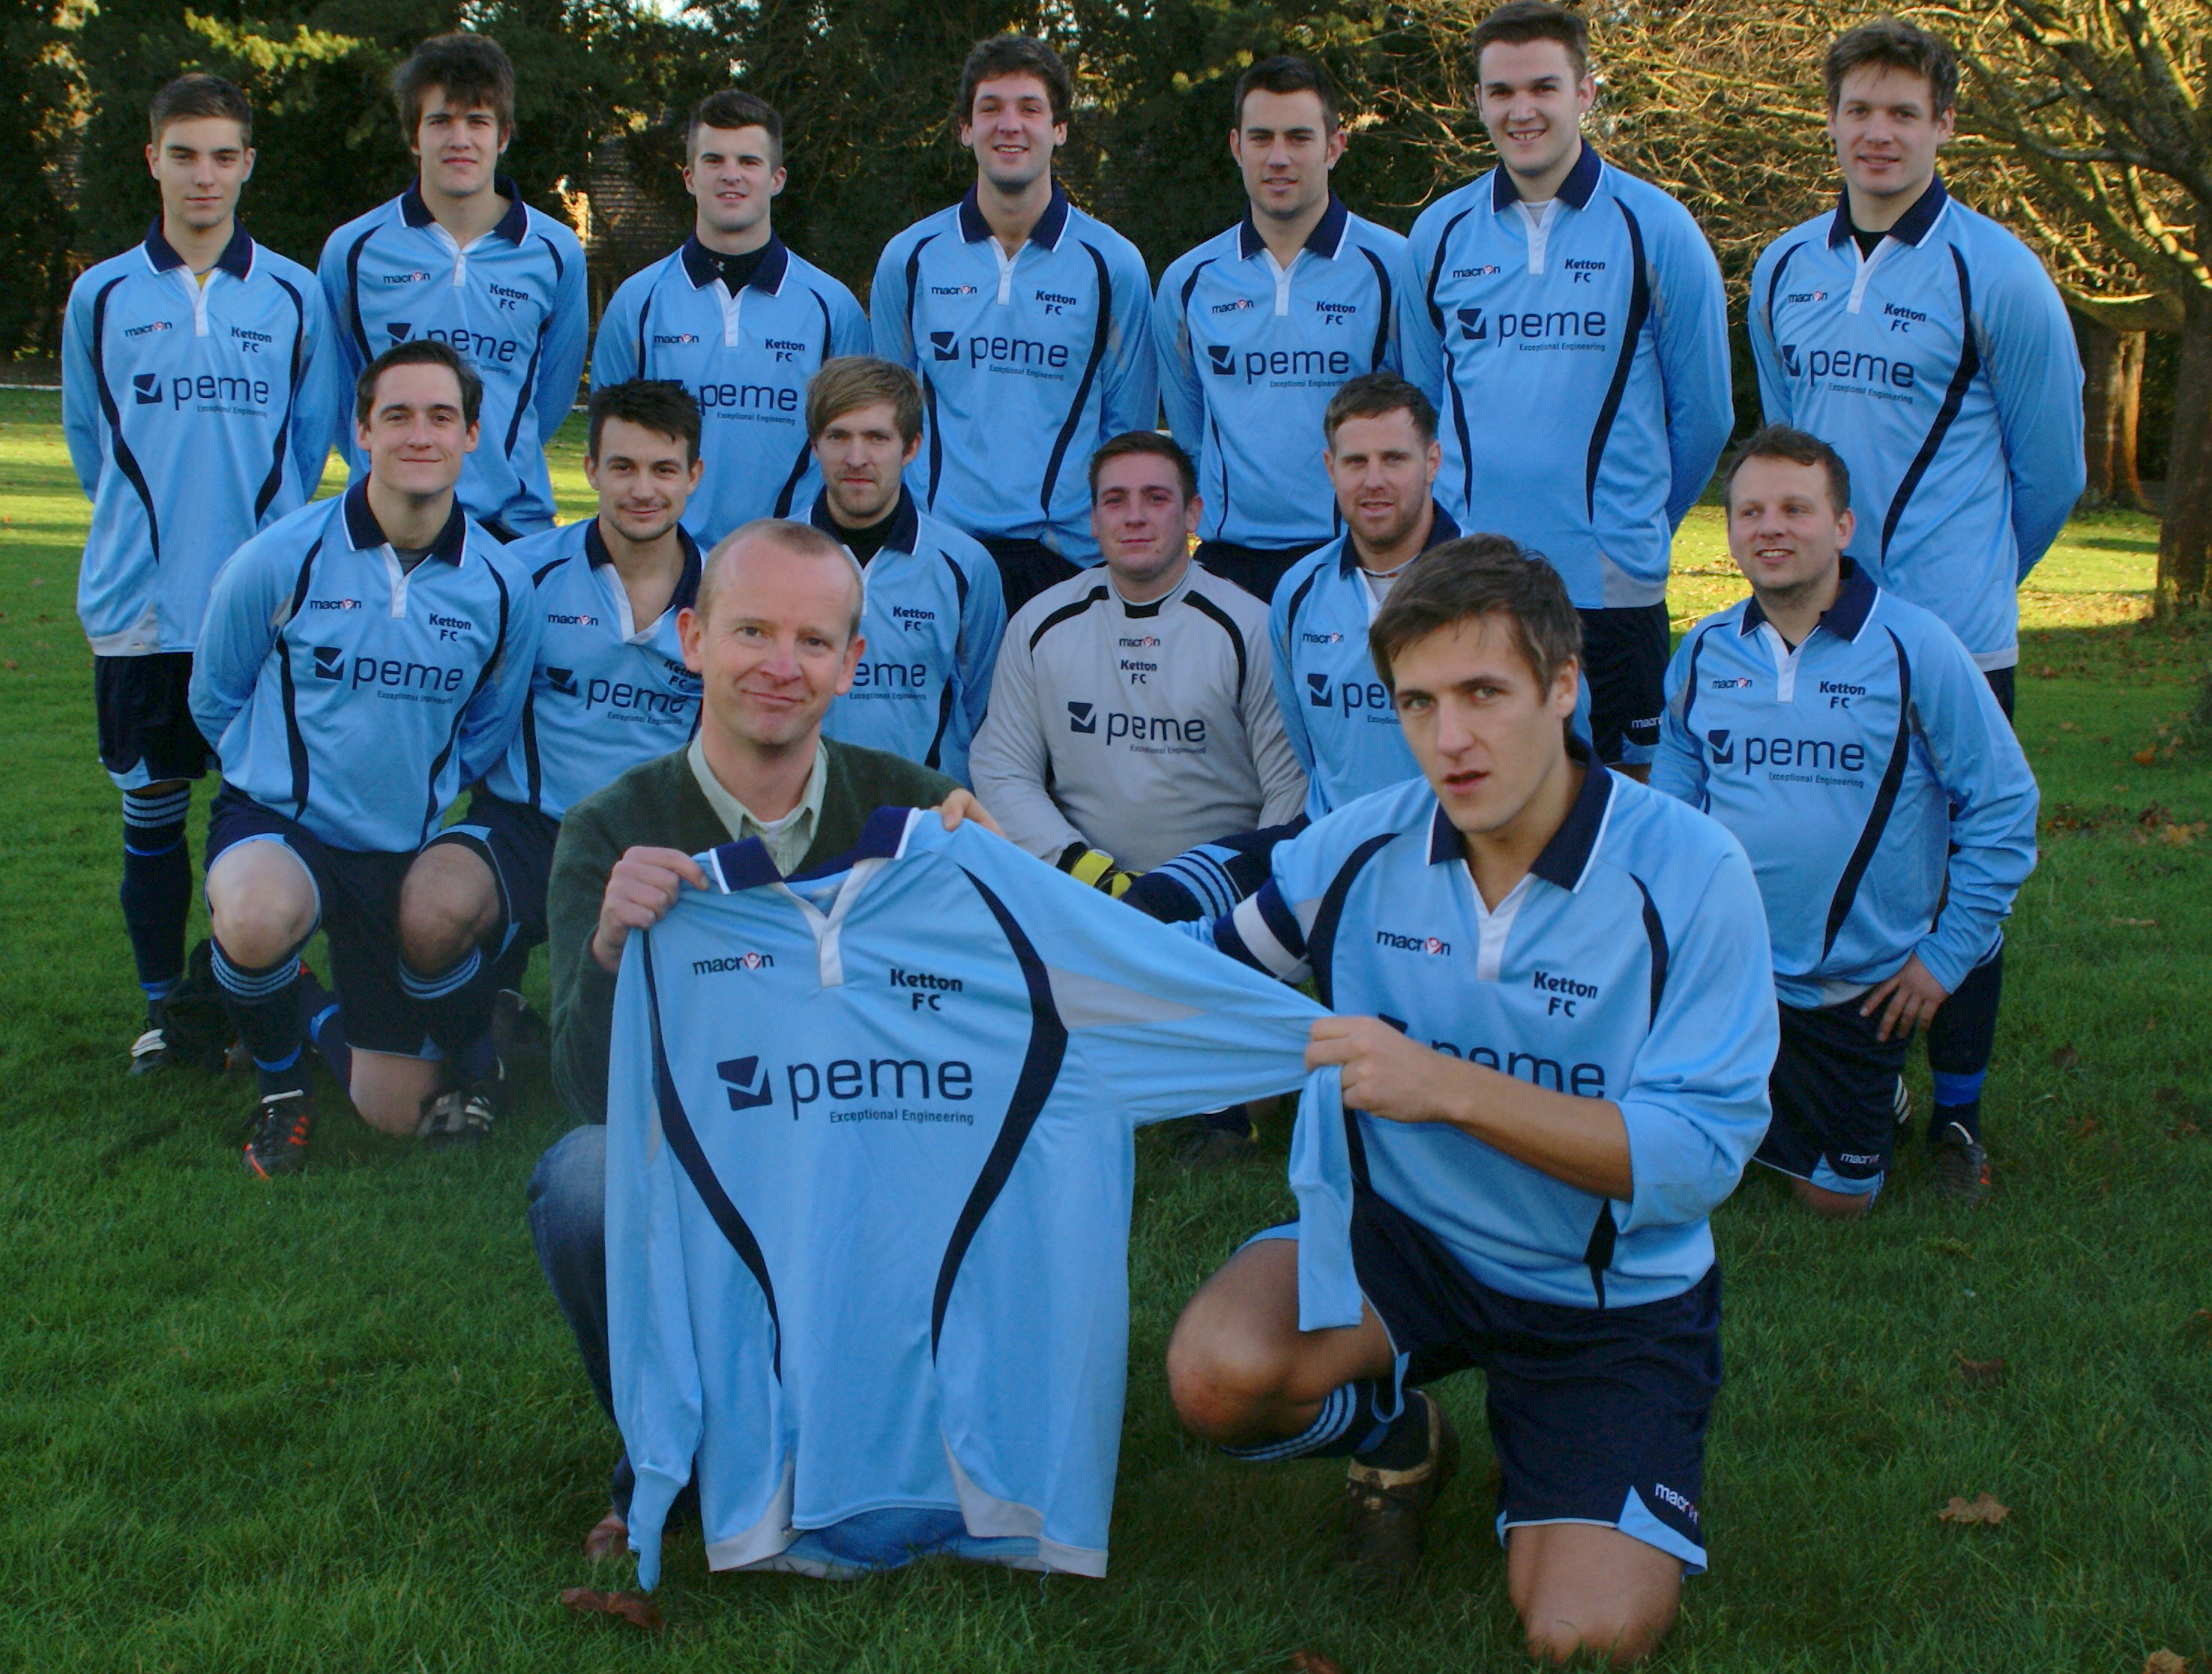 PEME sponsored Ketton F.C